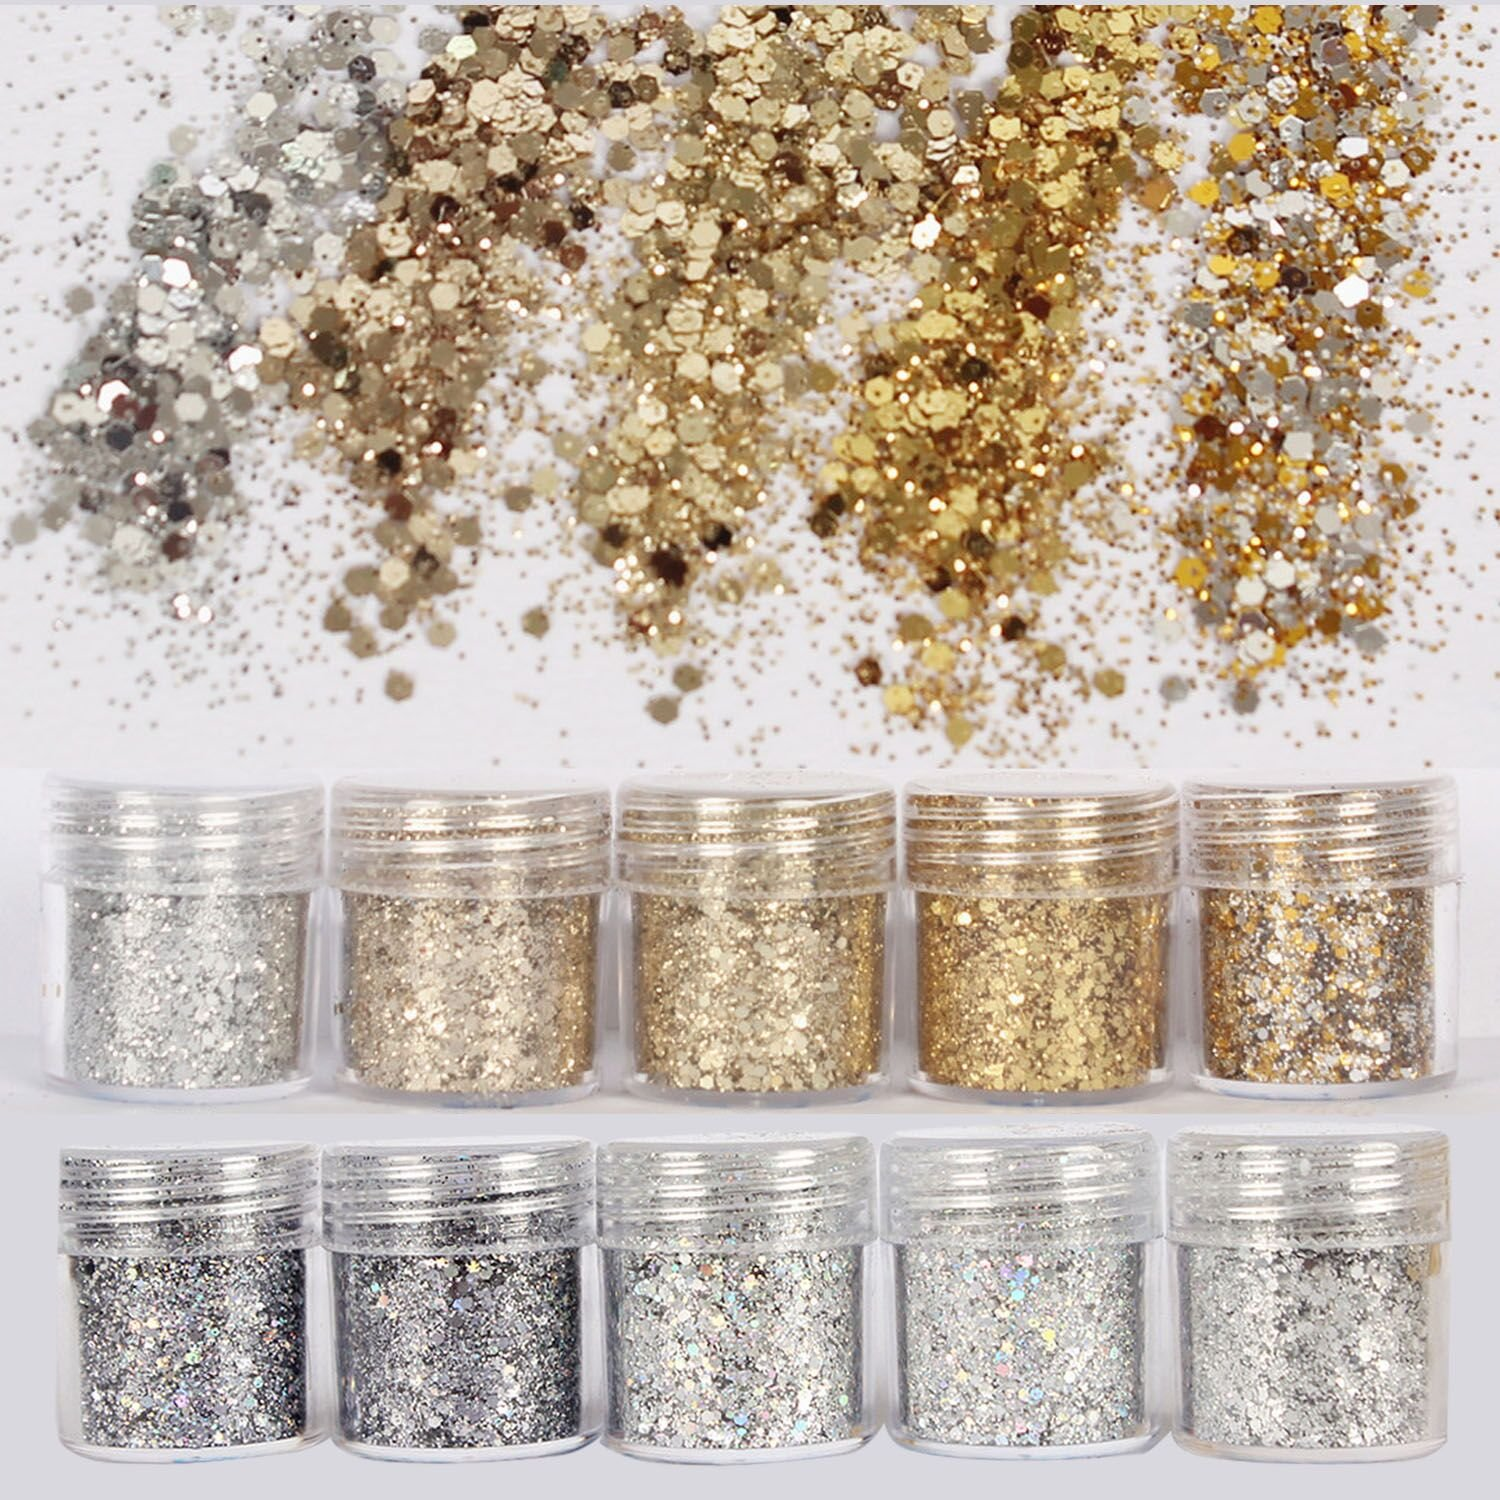 DaLin 10 Boxes Gold Silver Holographic Chunky Glitter Sequins Iridescent Flakes Ultra-thin Tips Colorful Mixed Paillette Festival Beauty Makeup Face Body Hair Nails Cosmetic Glitter